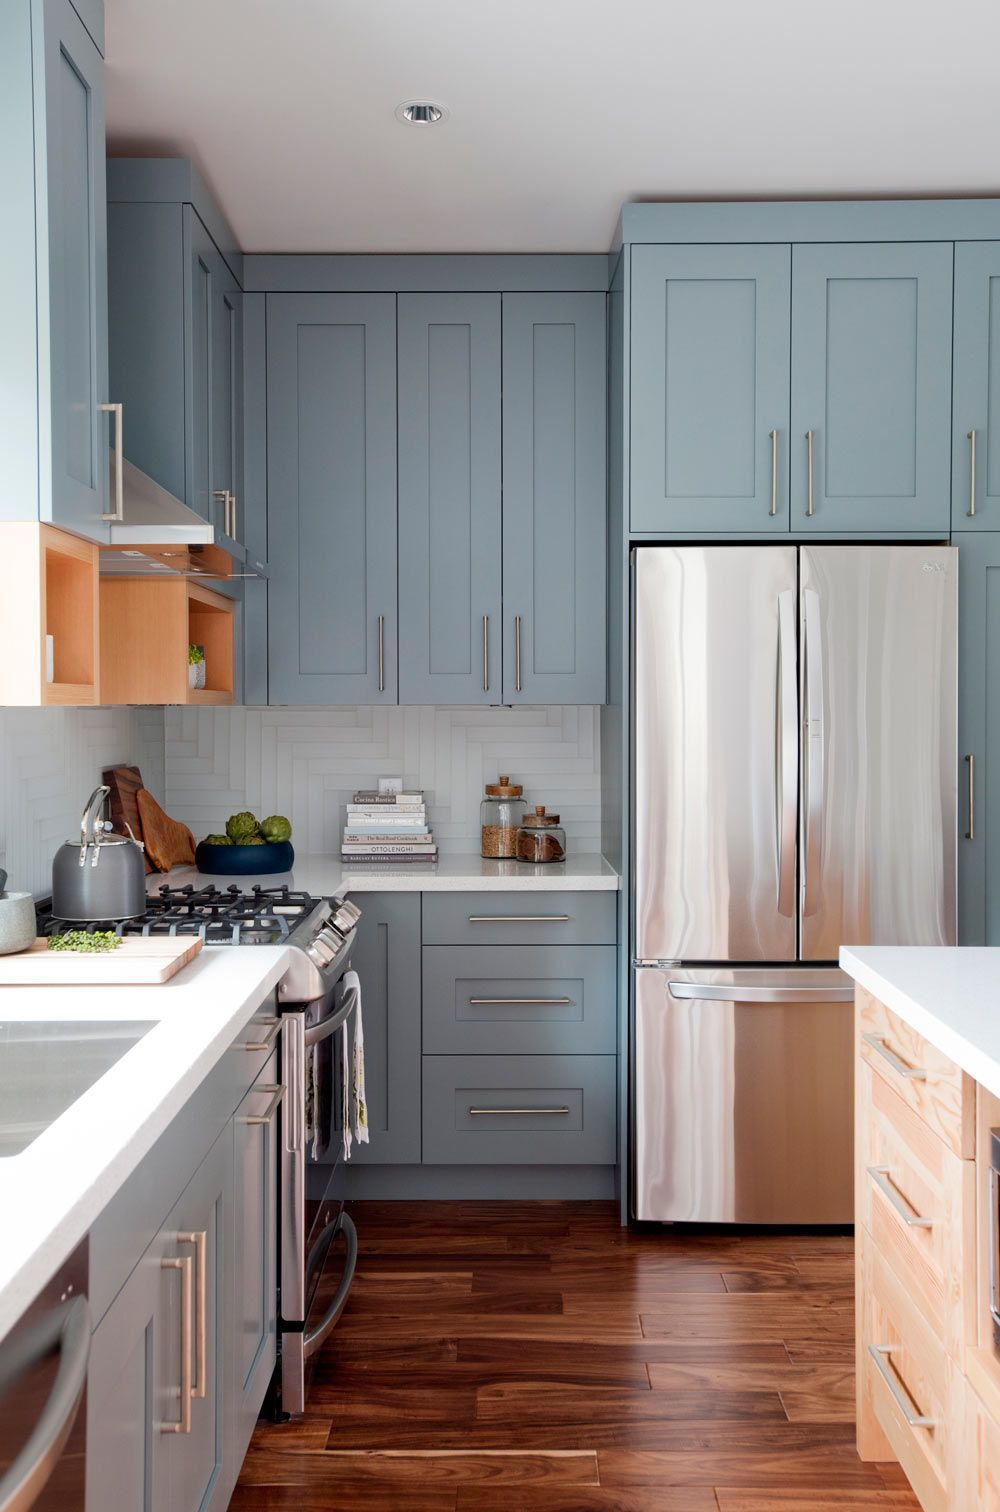 Unique Diy Repaint Kitchen Cabinets